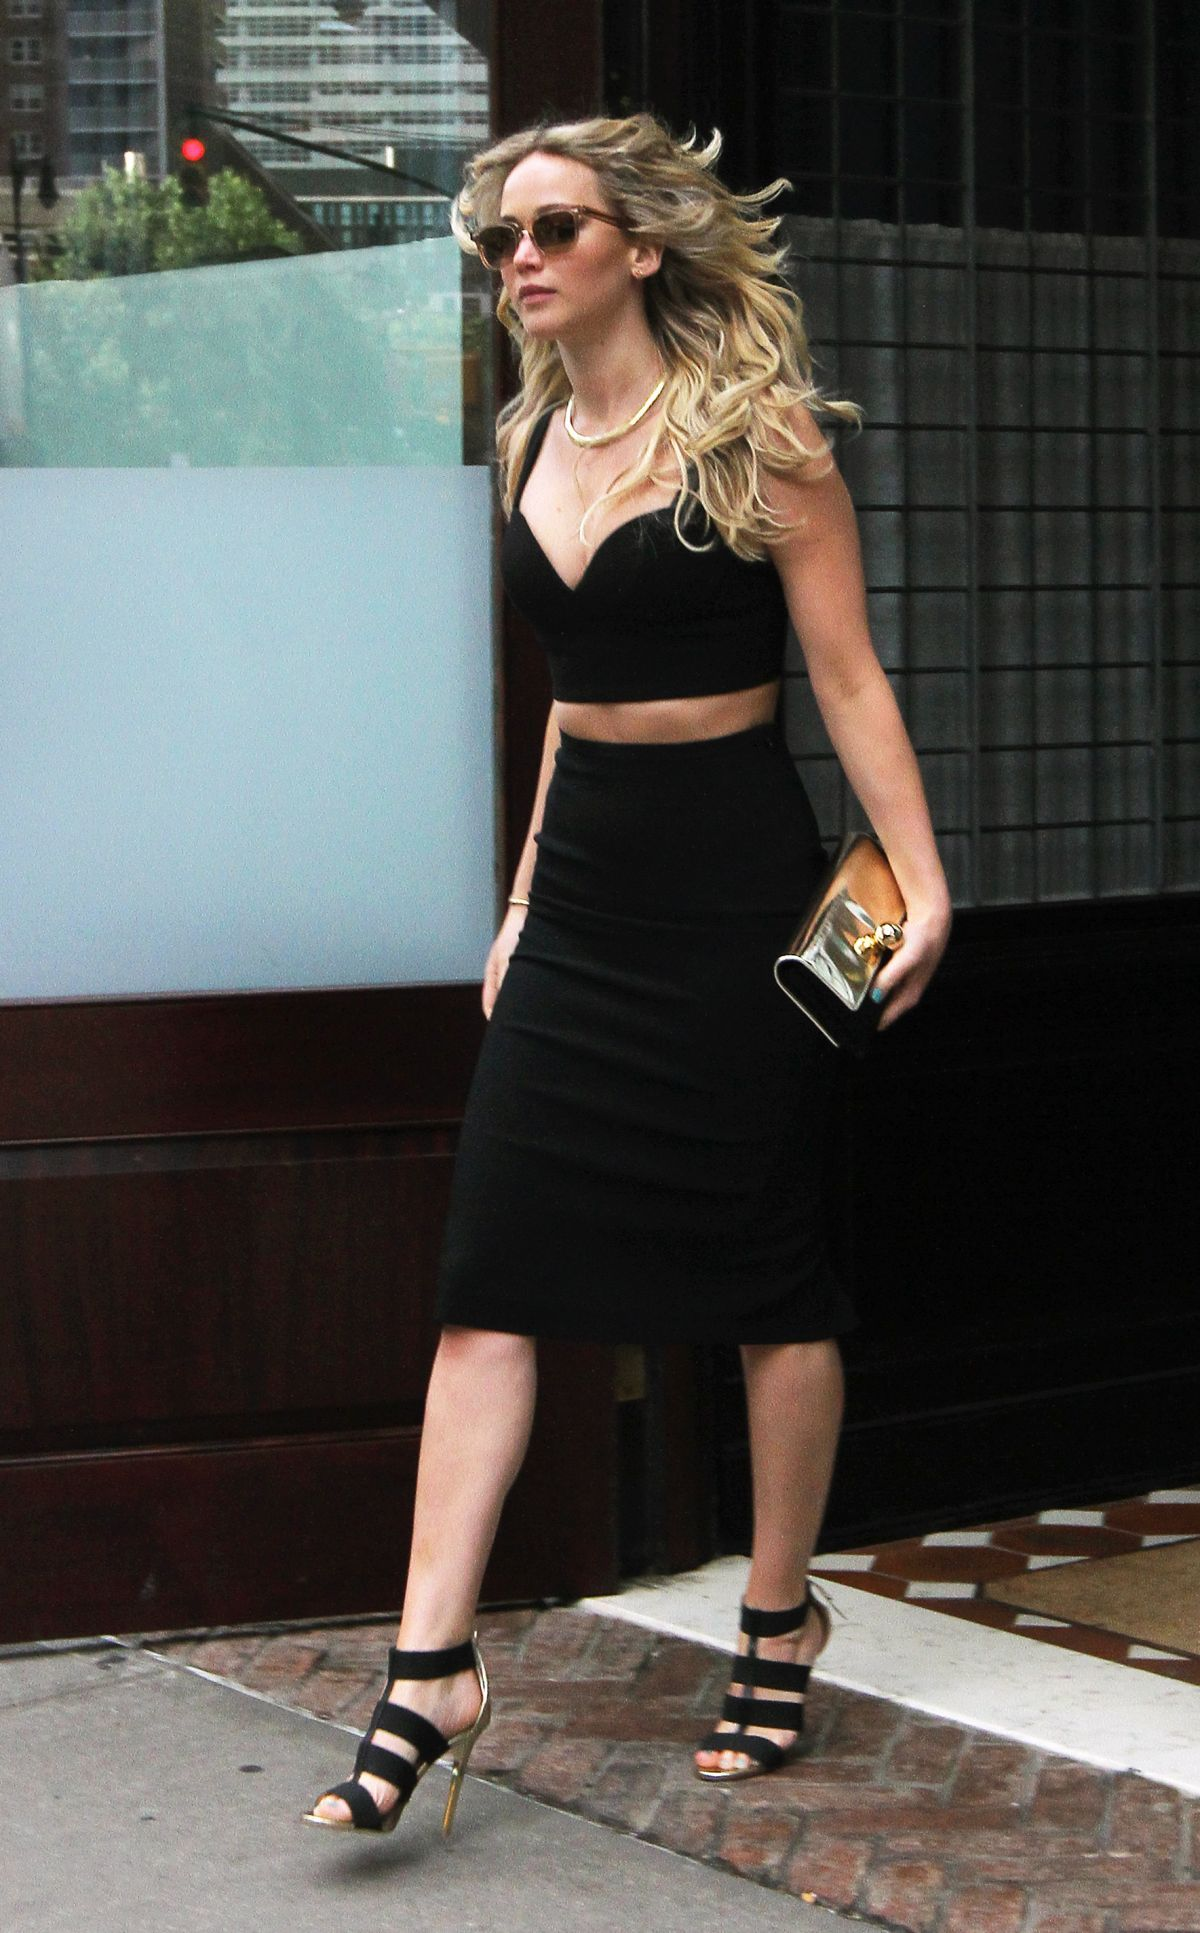 Jennifer lawrence leaving her hotel in nyc nude (44 photo), Pussy Celebrity photos